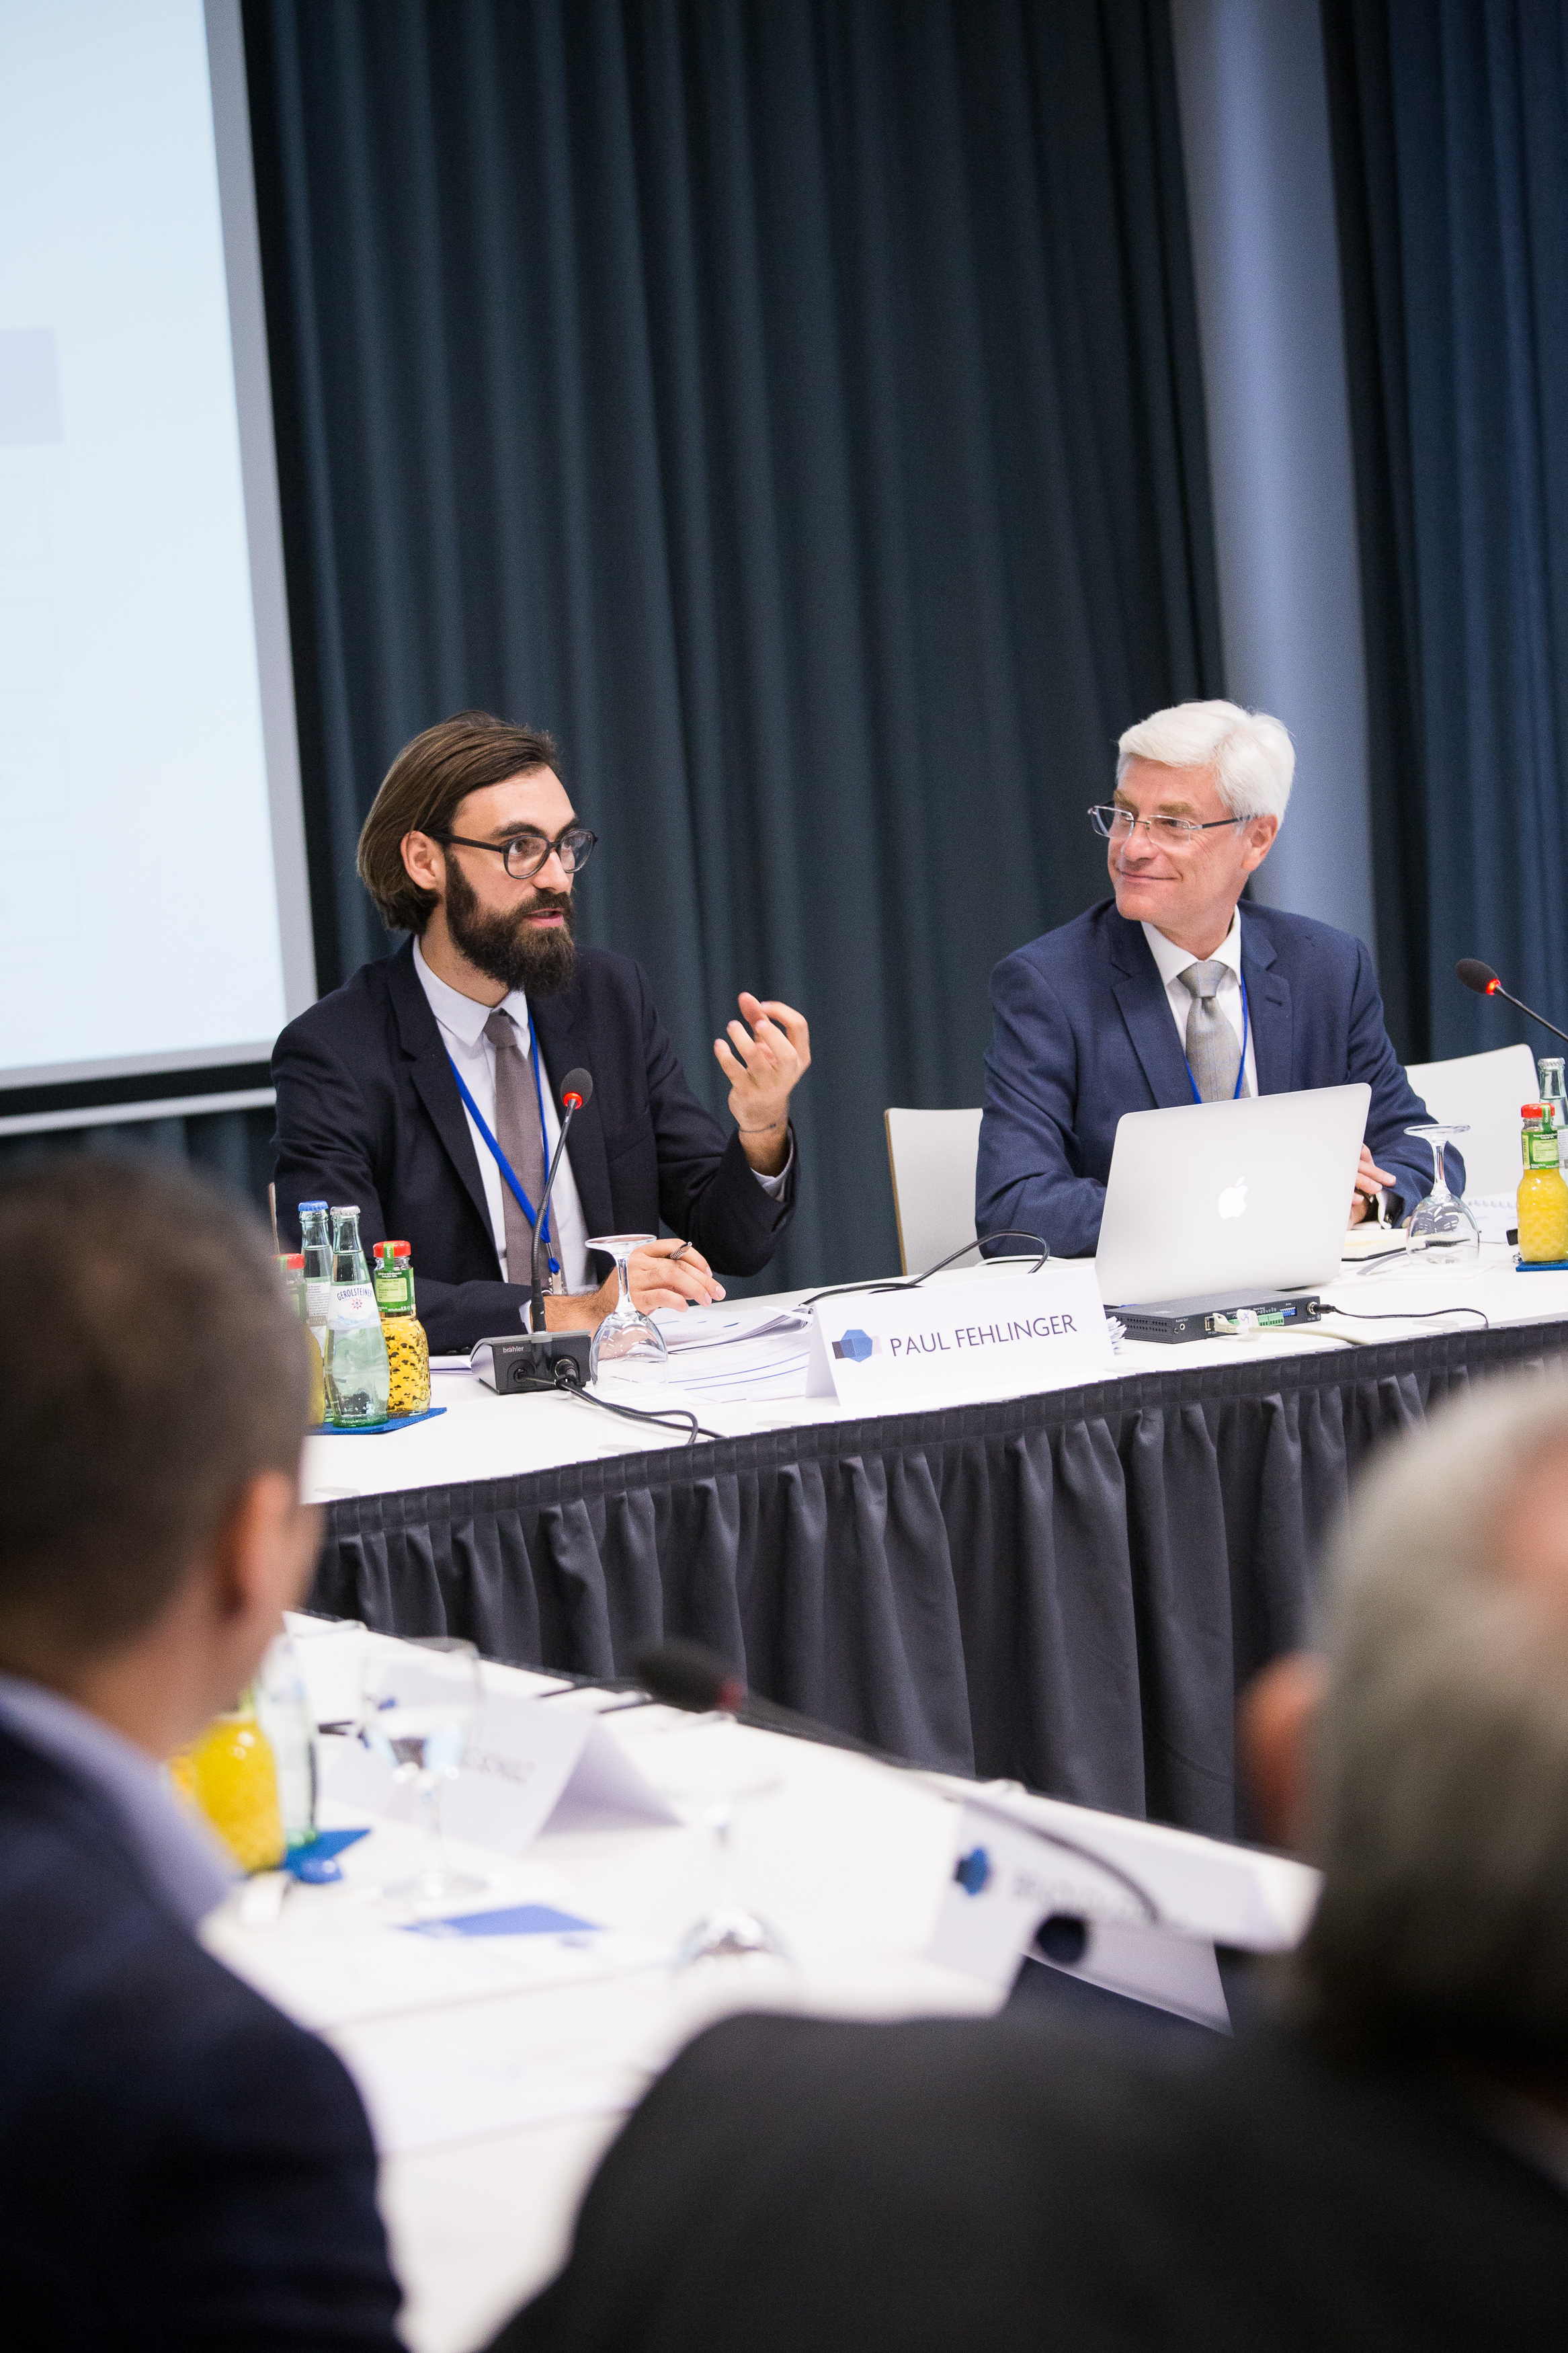 internetjurisdiction-berlin-sep-2015-08.jpg